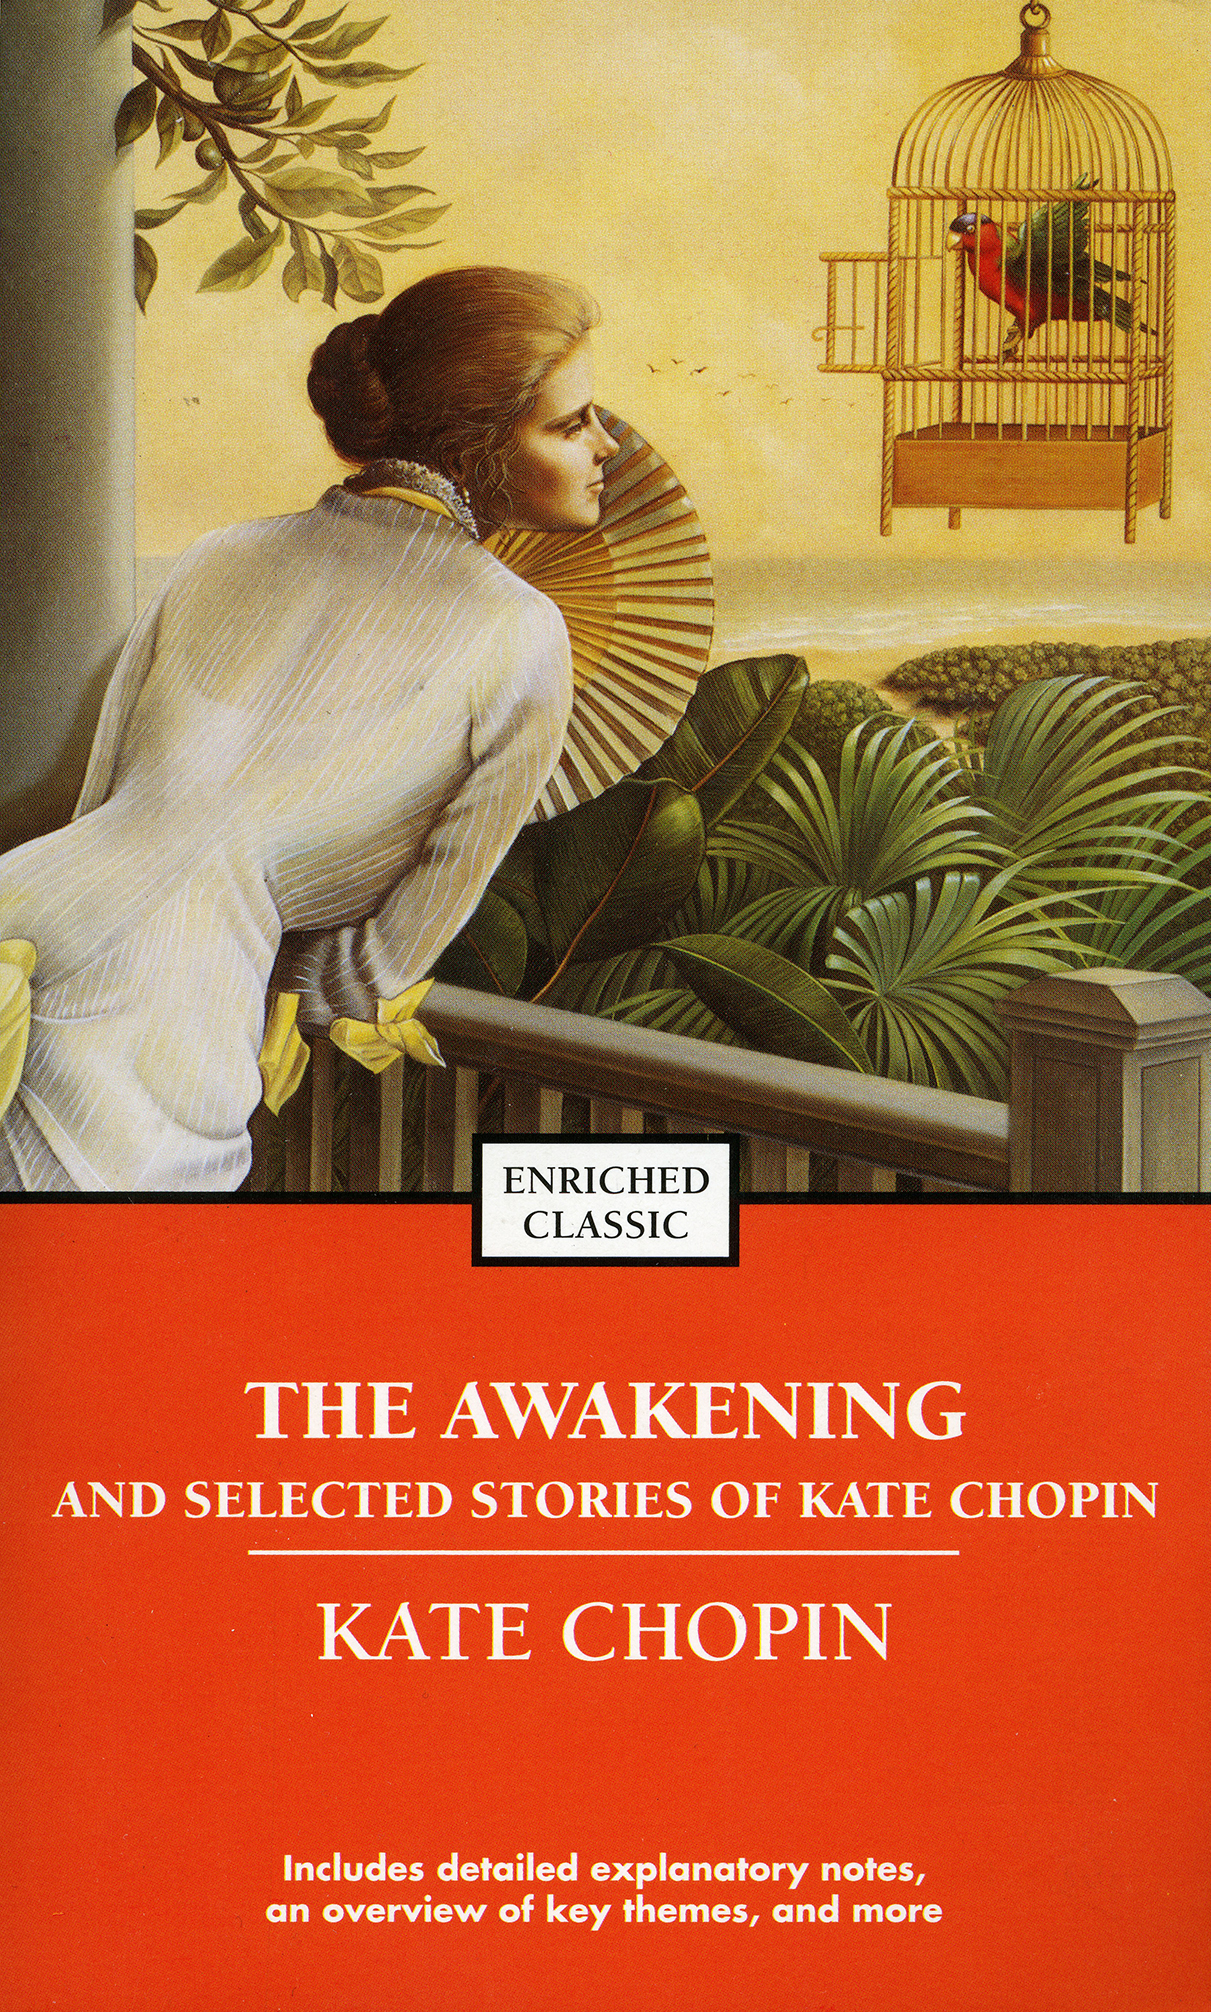 What literary device apart from symbolism is used in The Awakening by Kate Chopin?